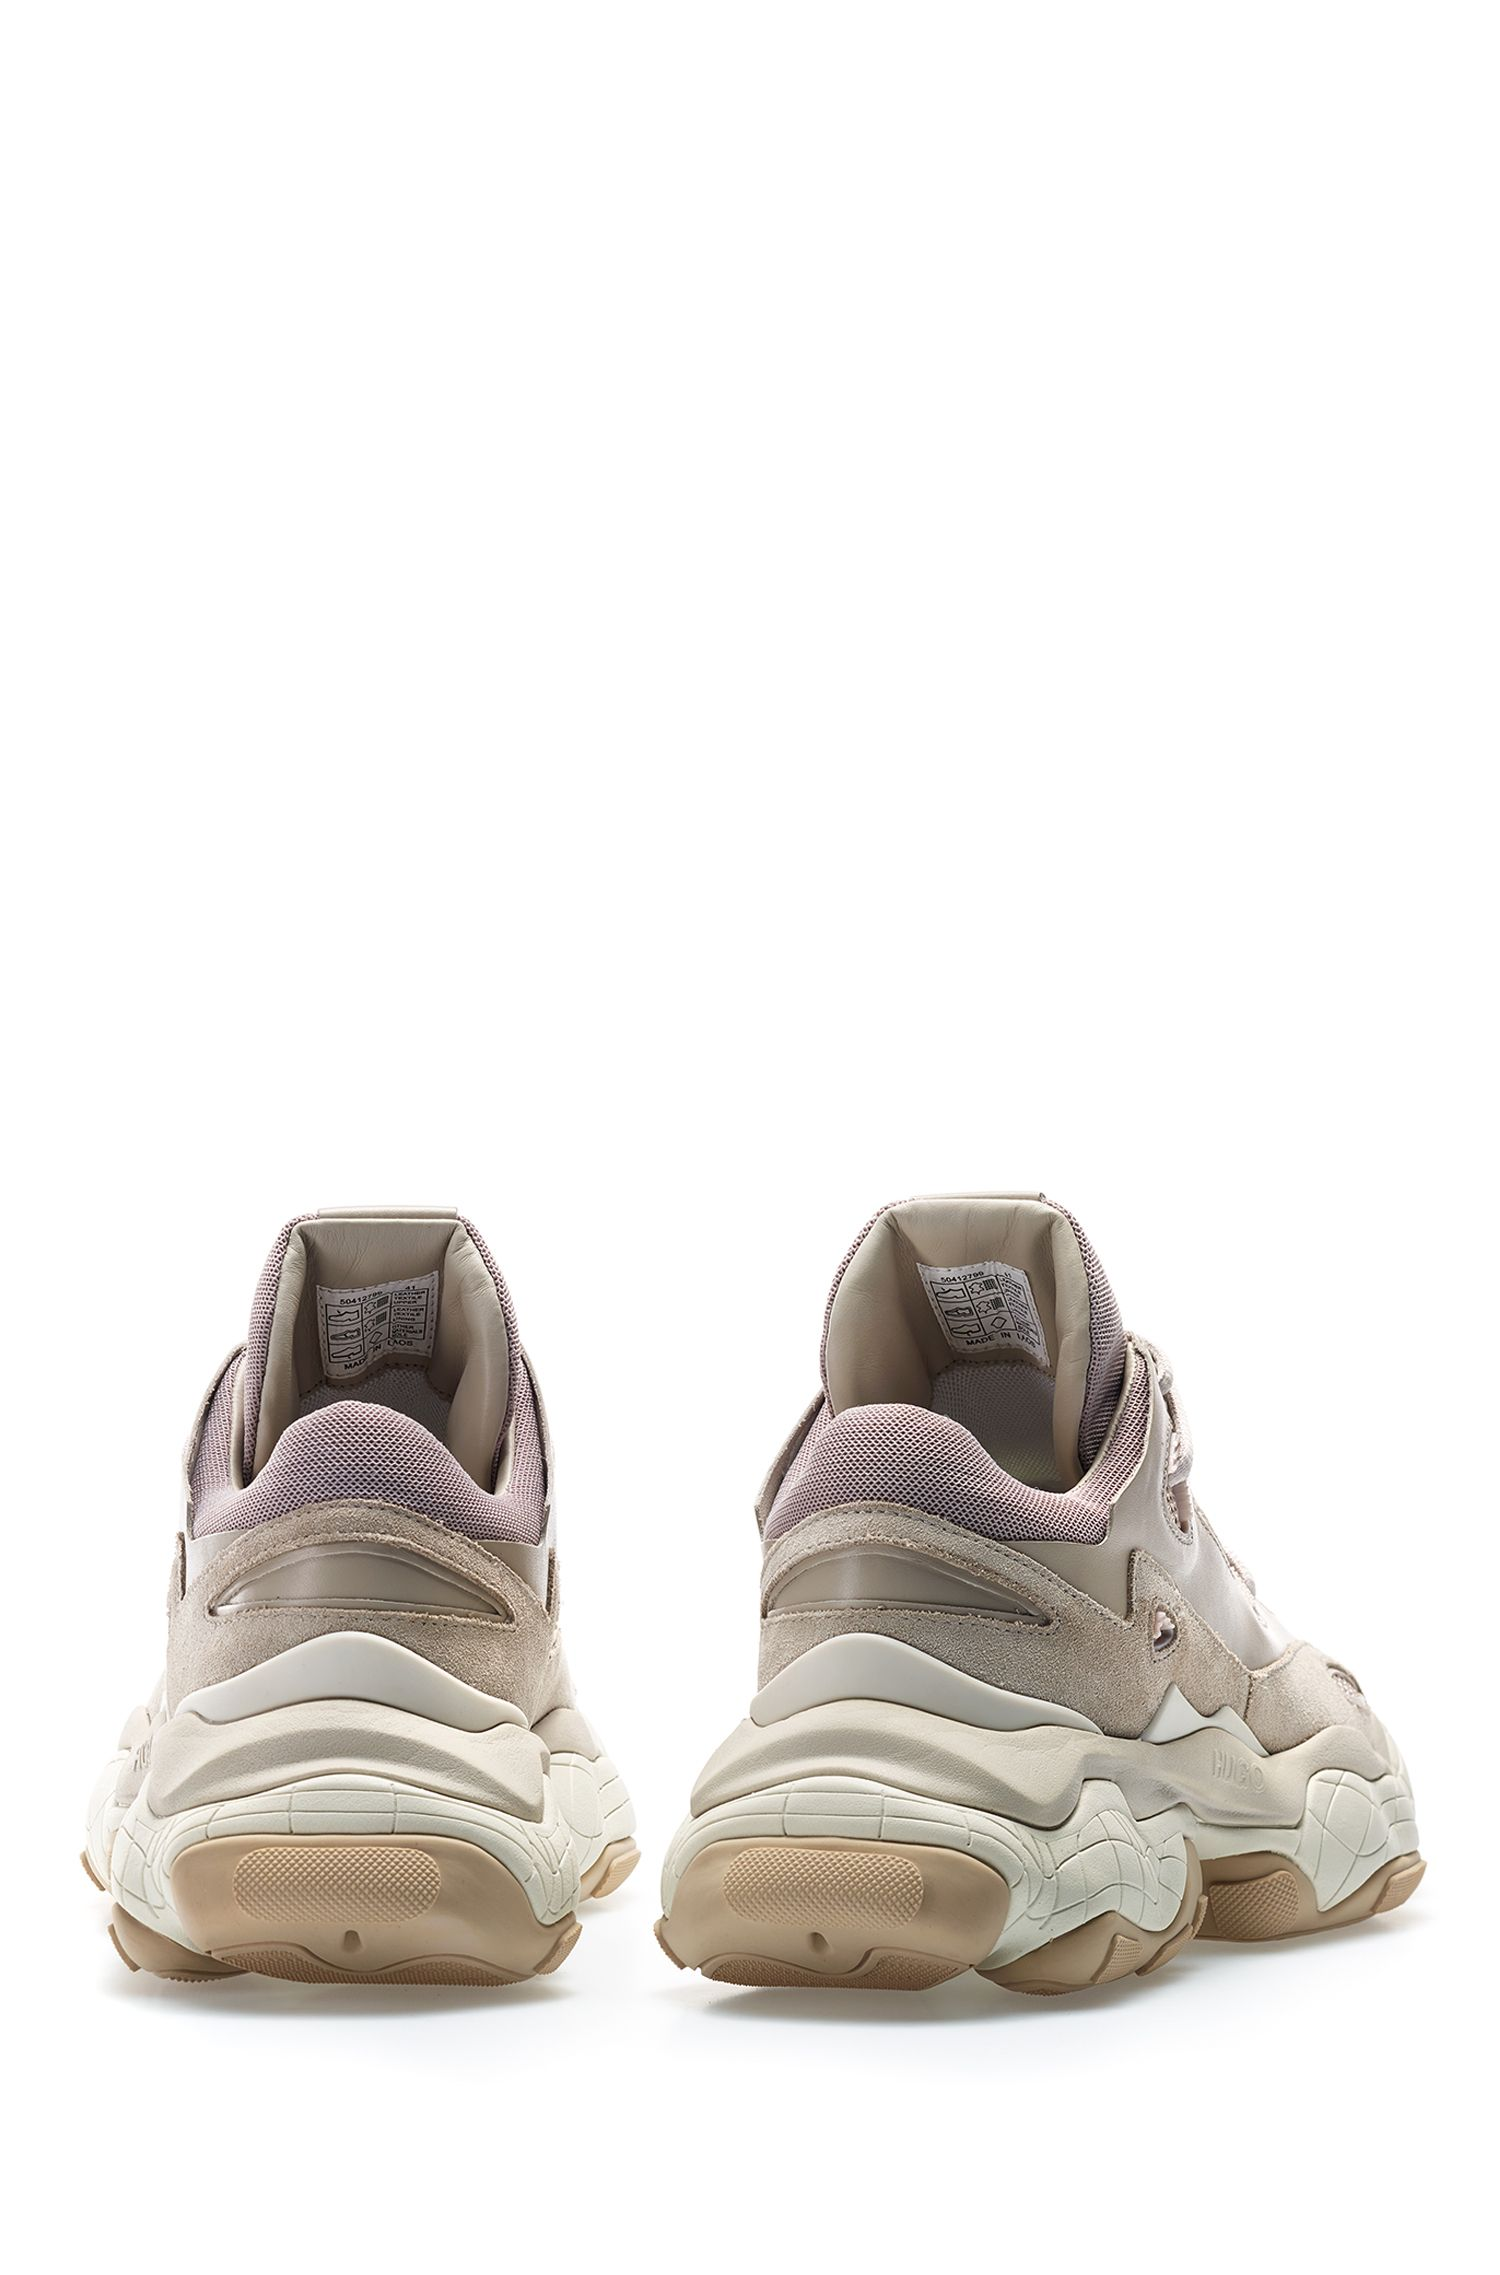 Lace-up sneakers in mixed leather with mesh detailing, Beige